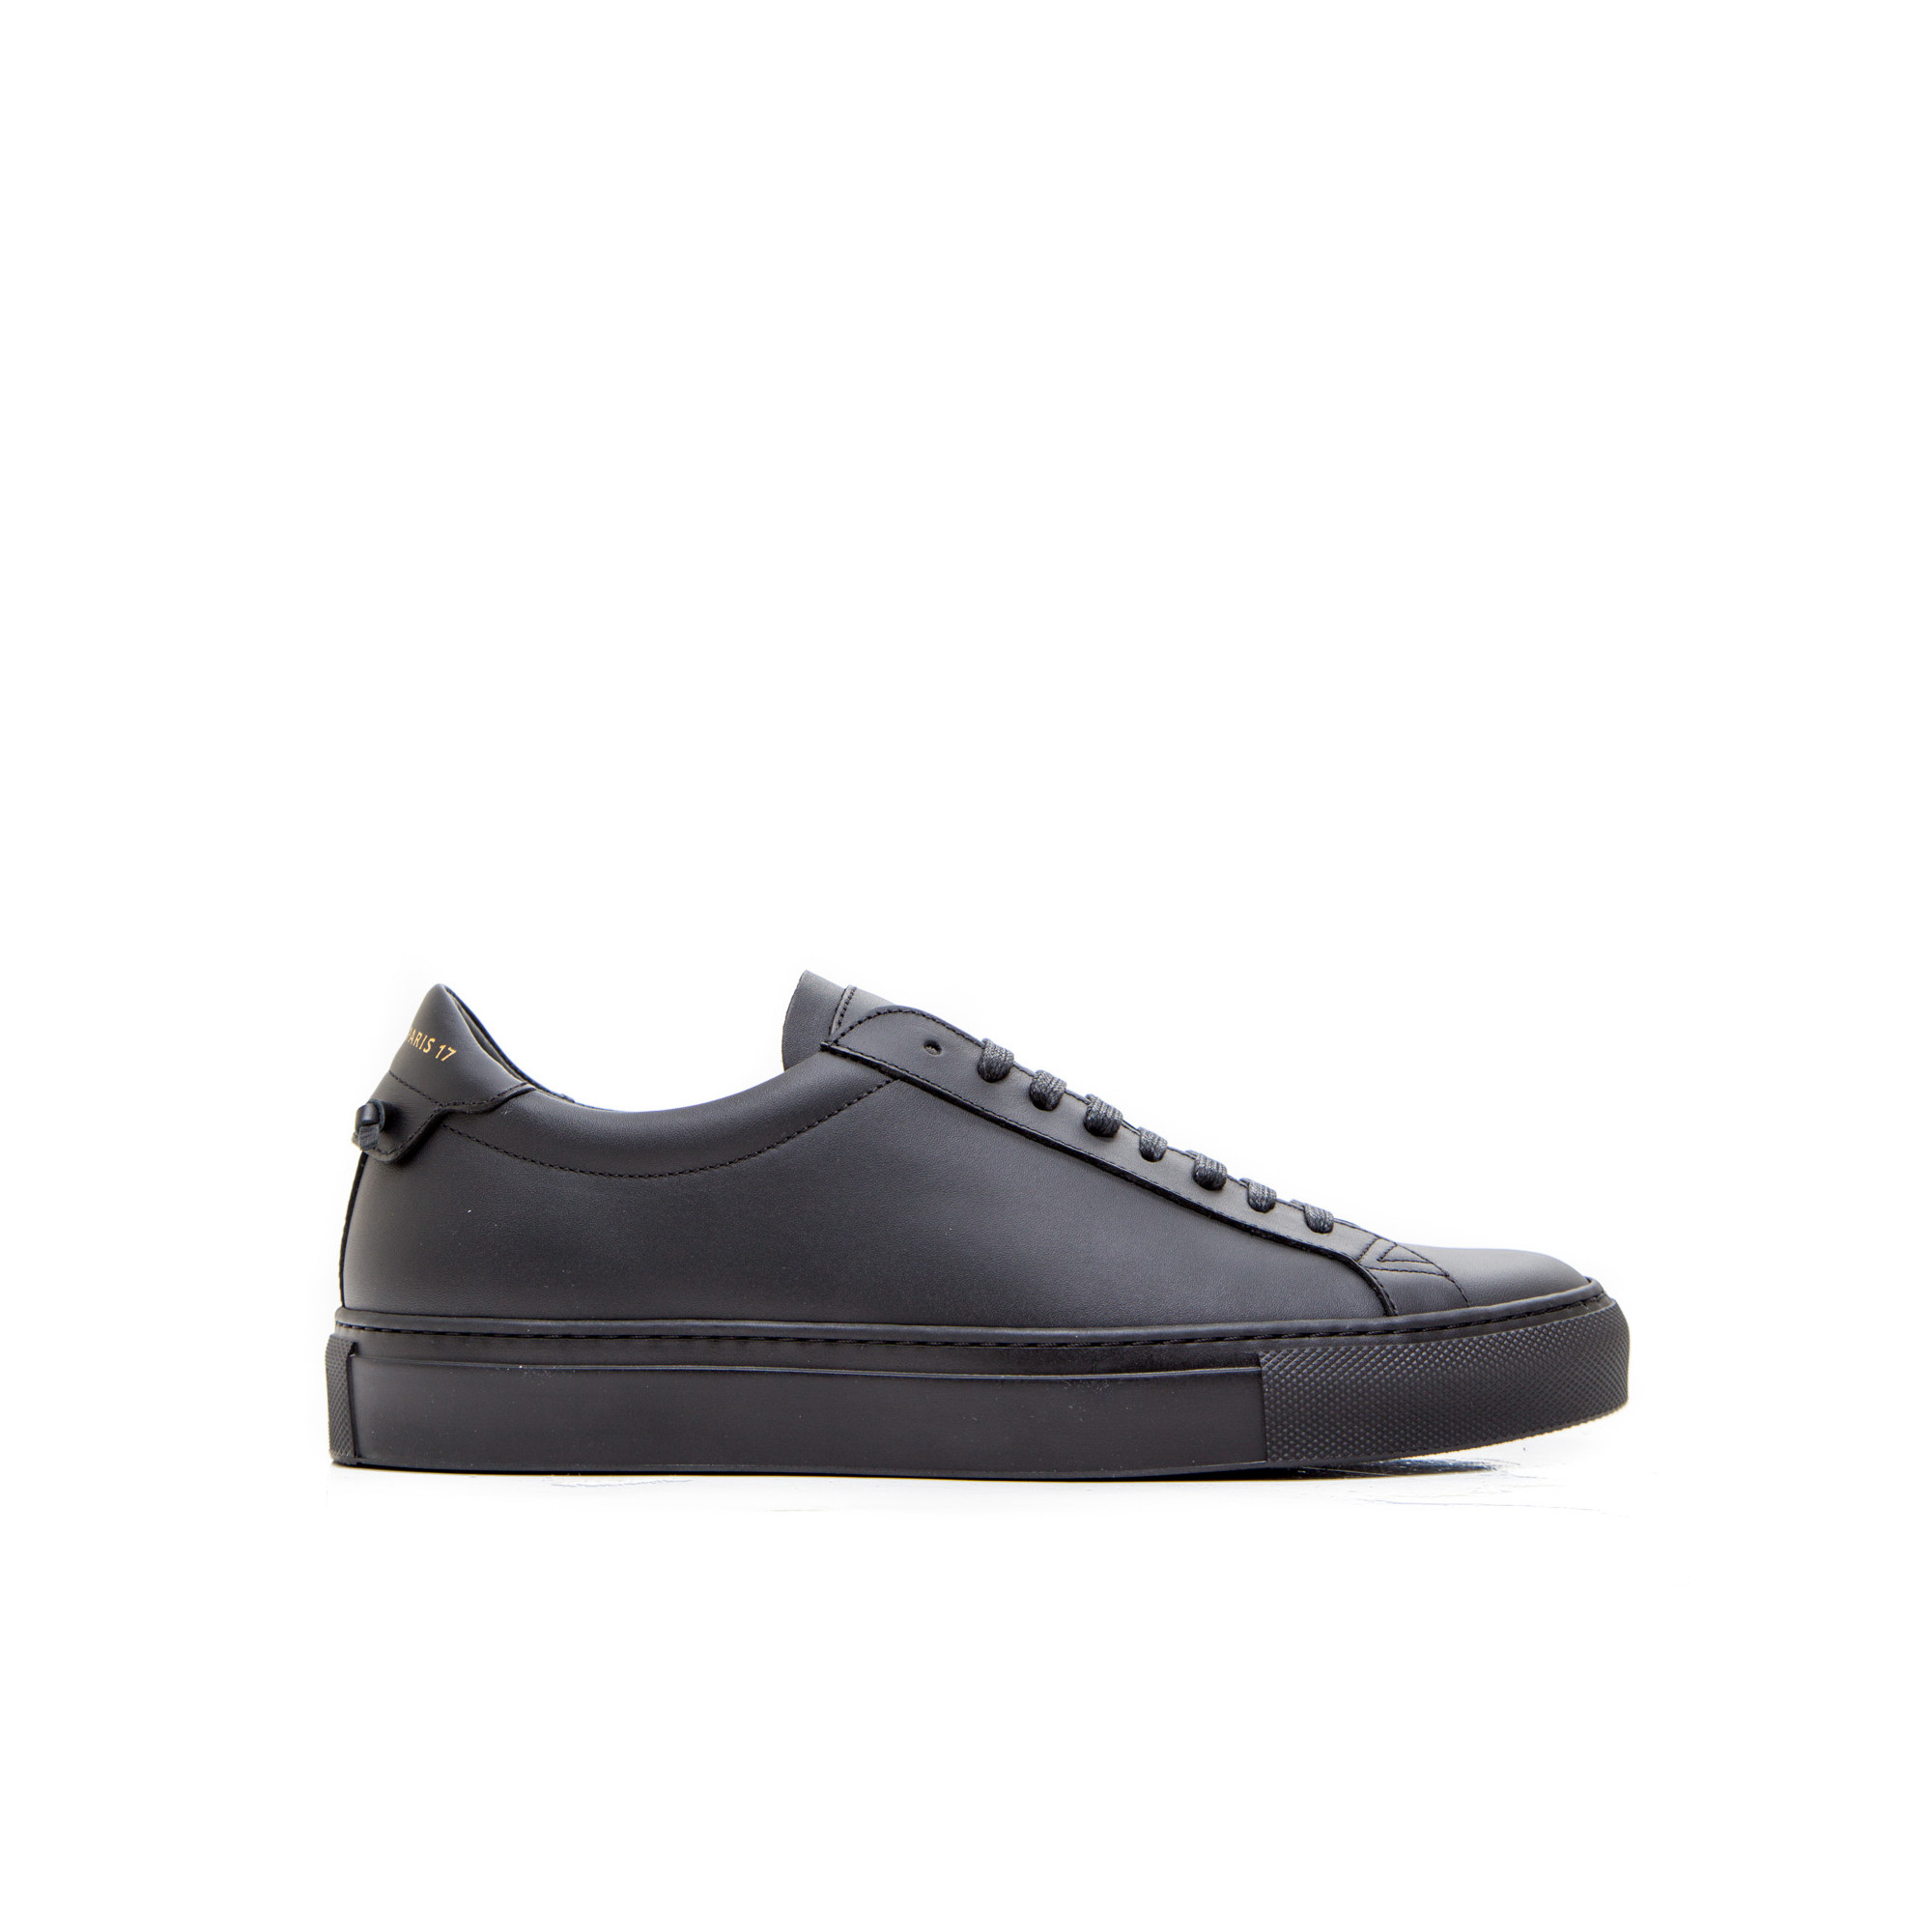 Chaussures Givenchy Pour Hommes 0T1mazz